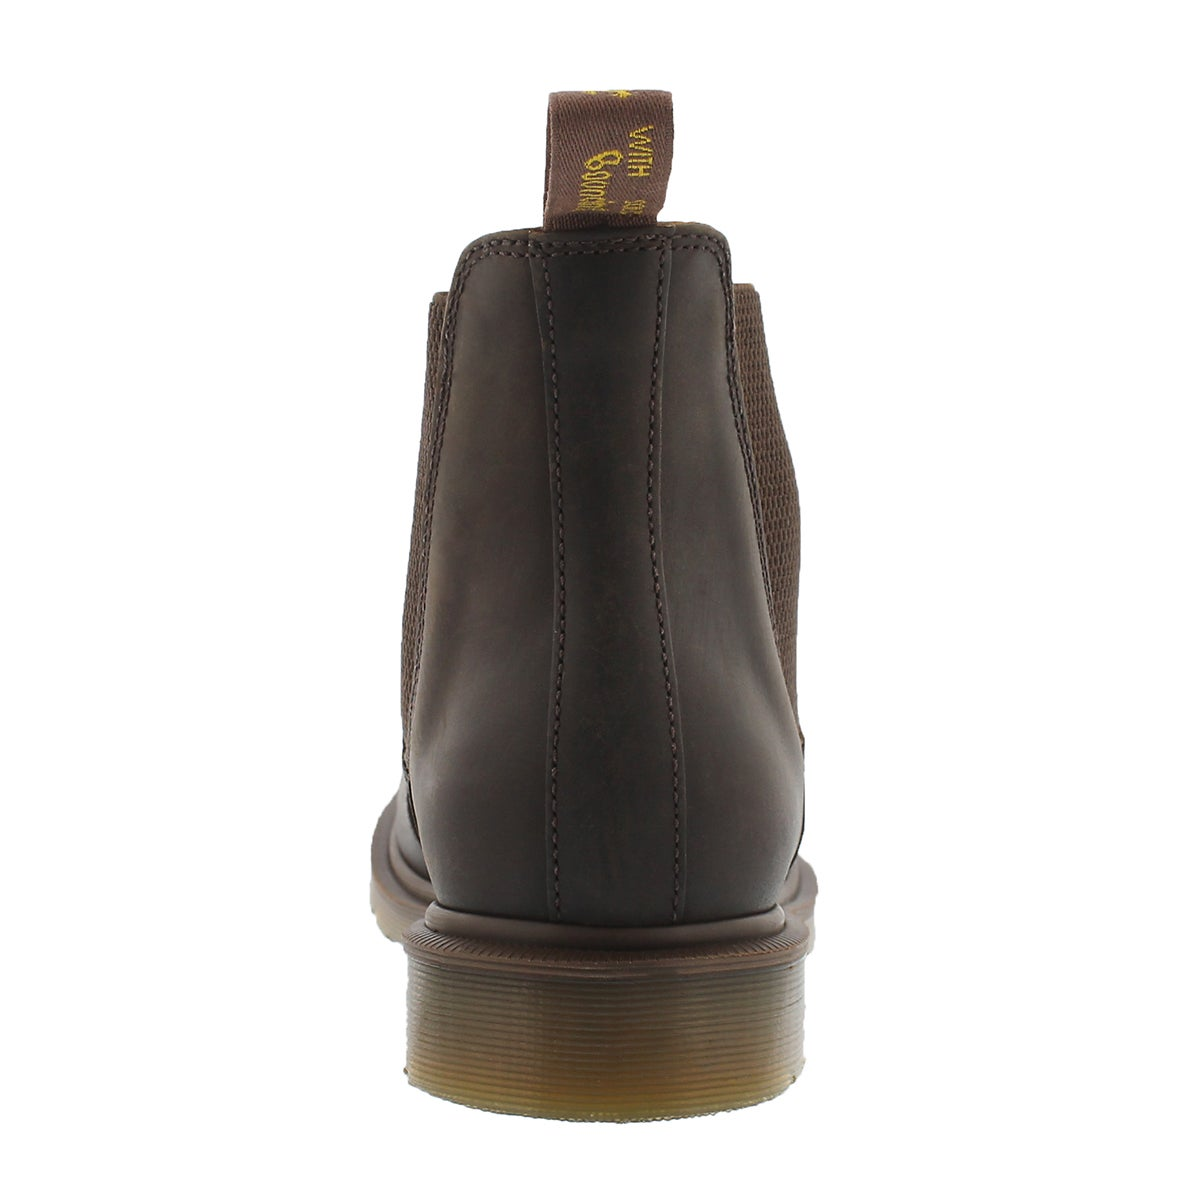 Mns Rugged 2976 gaucho chelsea boot